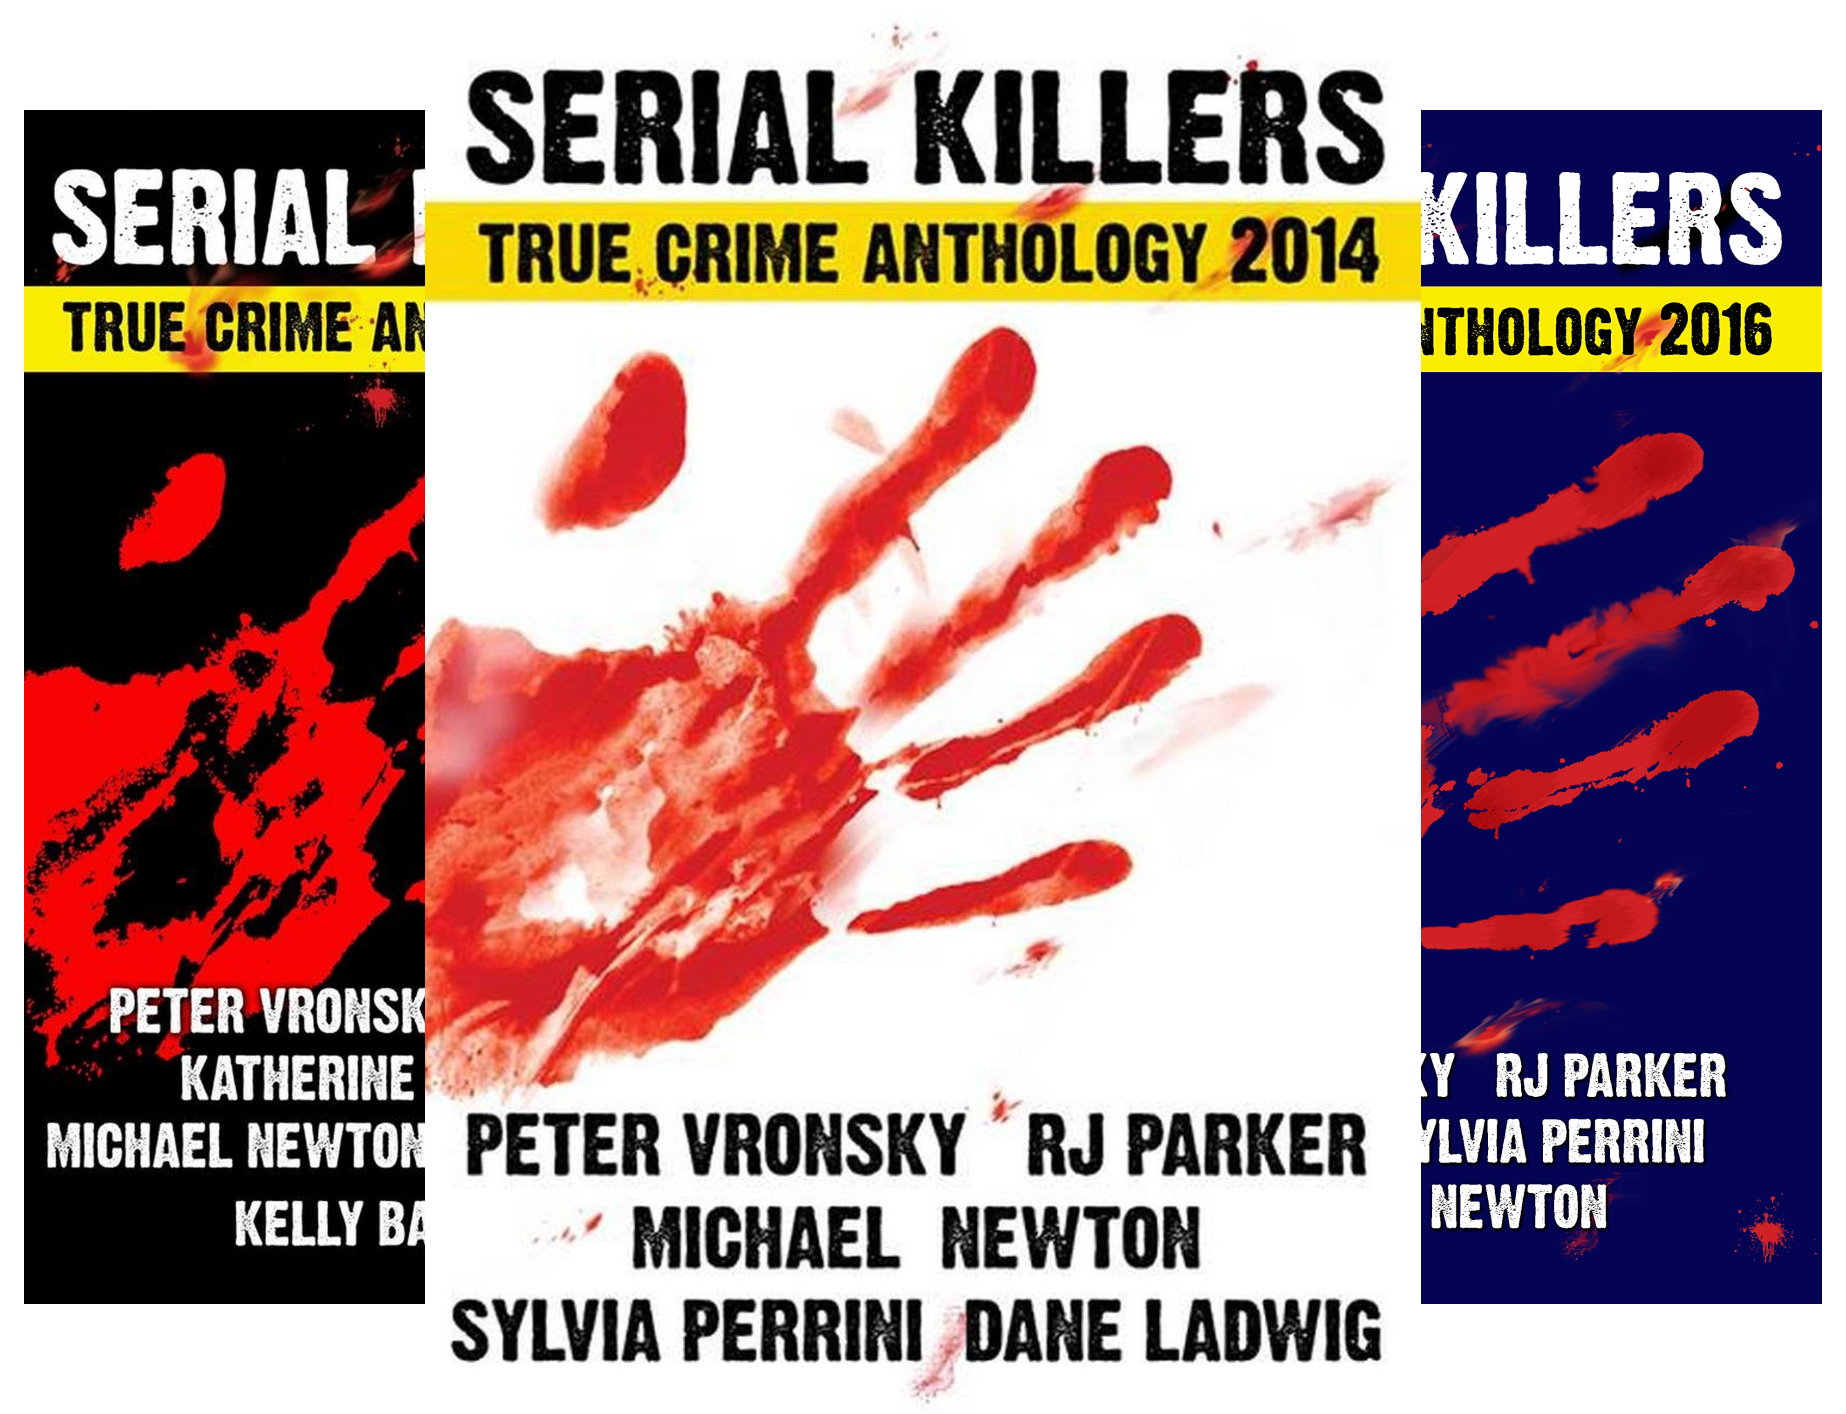 Annual Serial Killers Anthology